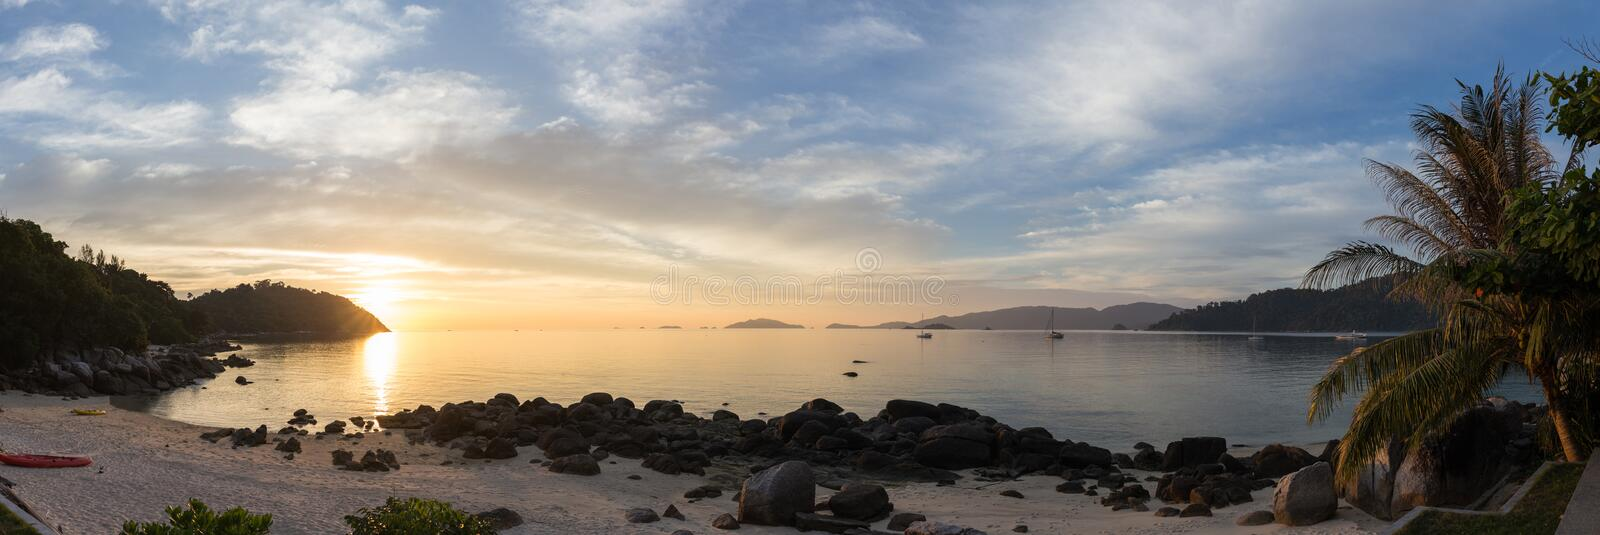 Beautiful panoramic view of tropical beach with sunset royalty free stock photos